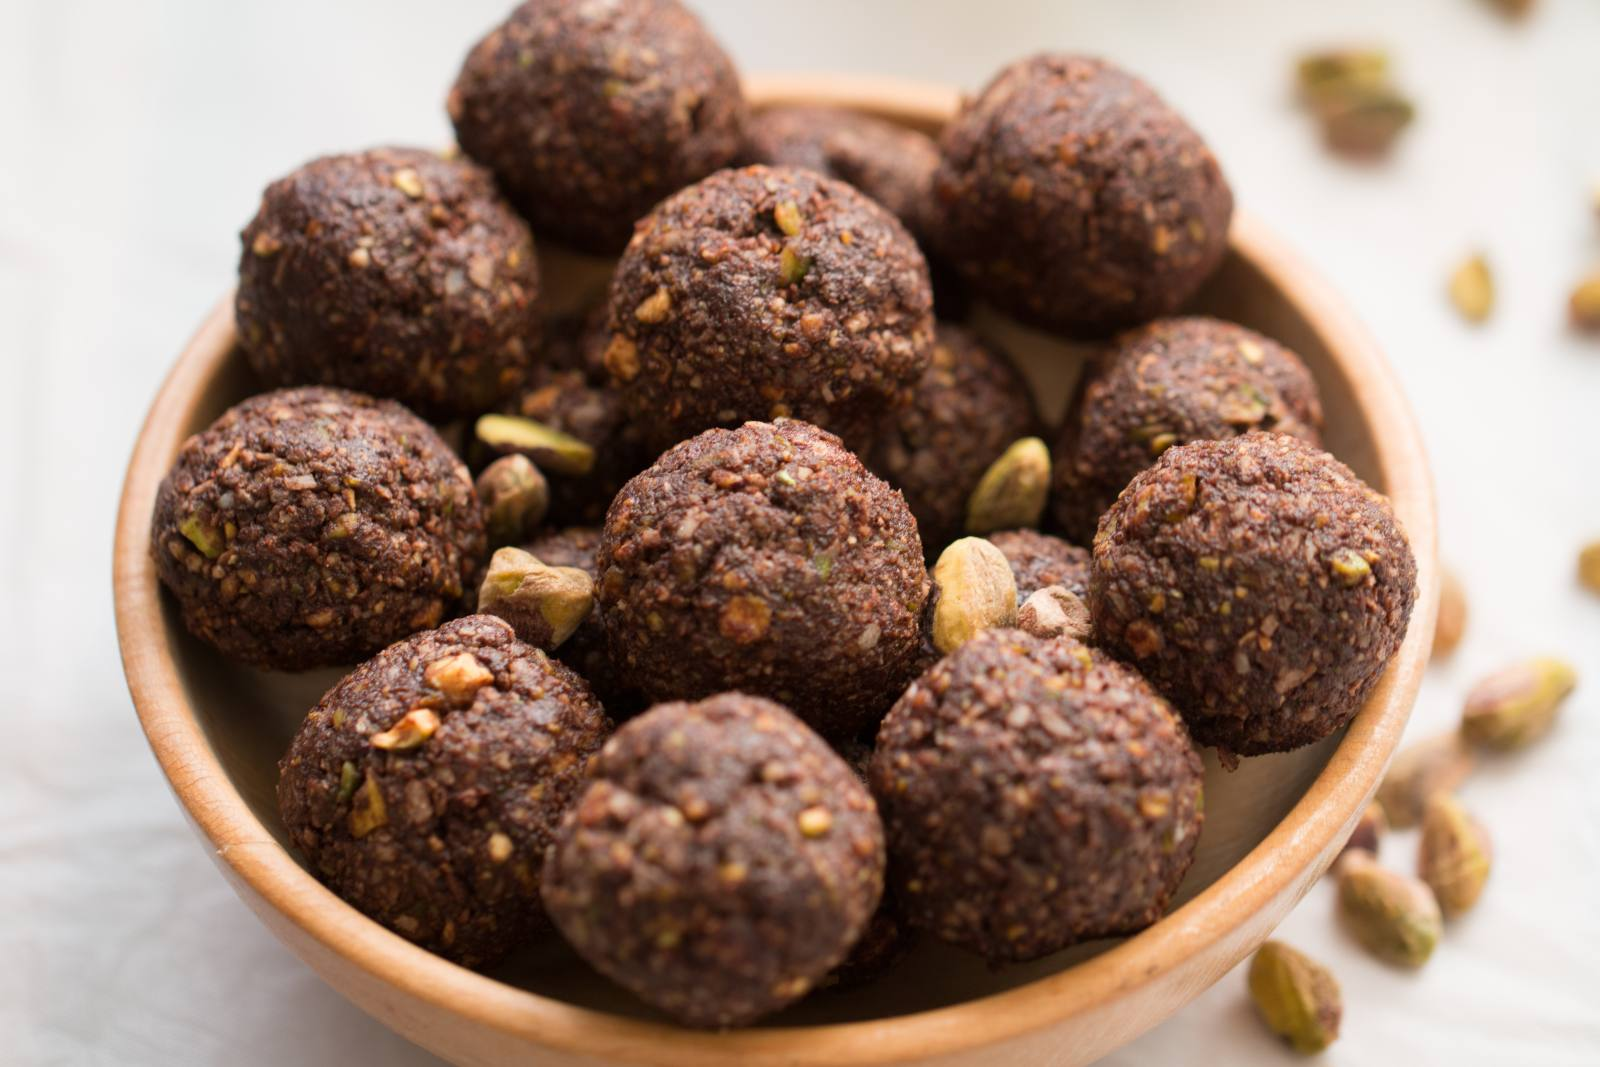 Chocolate Coconut Pistachio Bites Recipe (Paleo & Vegan)